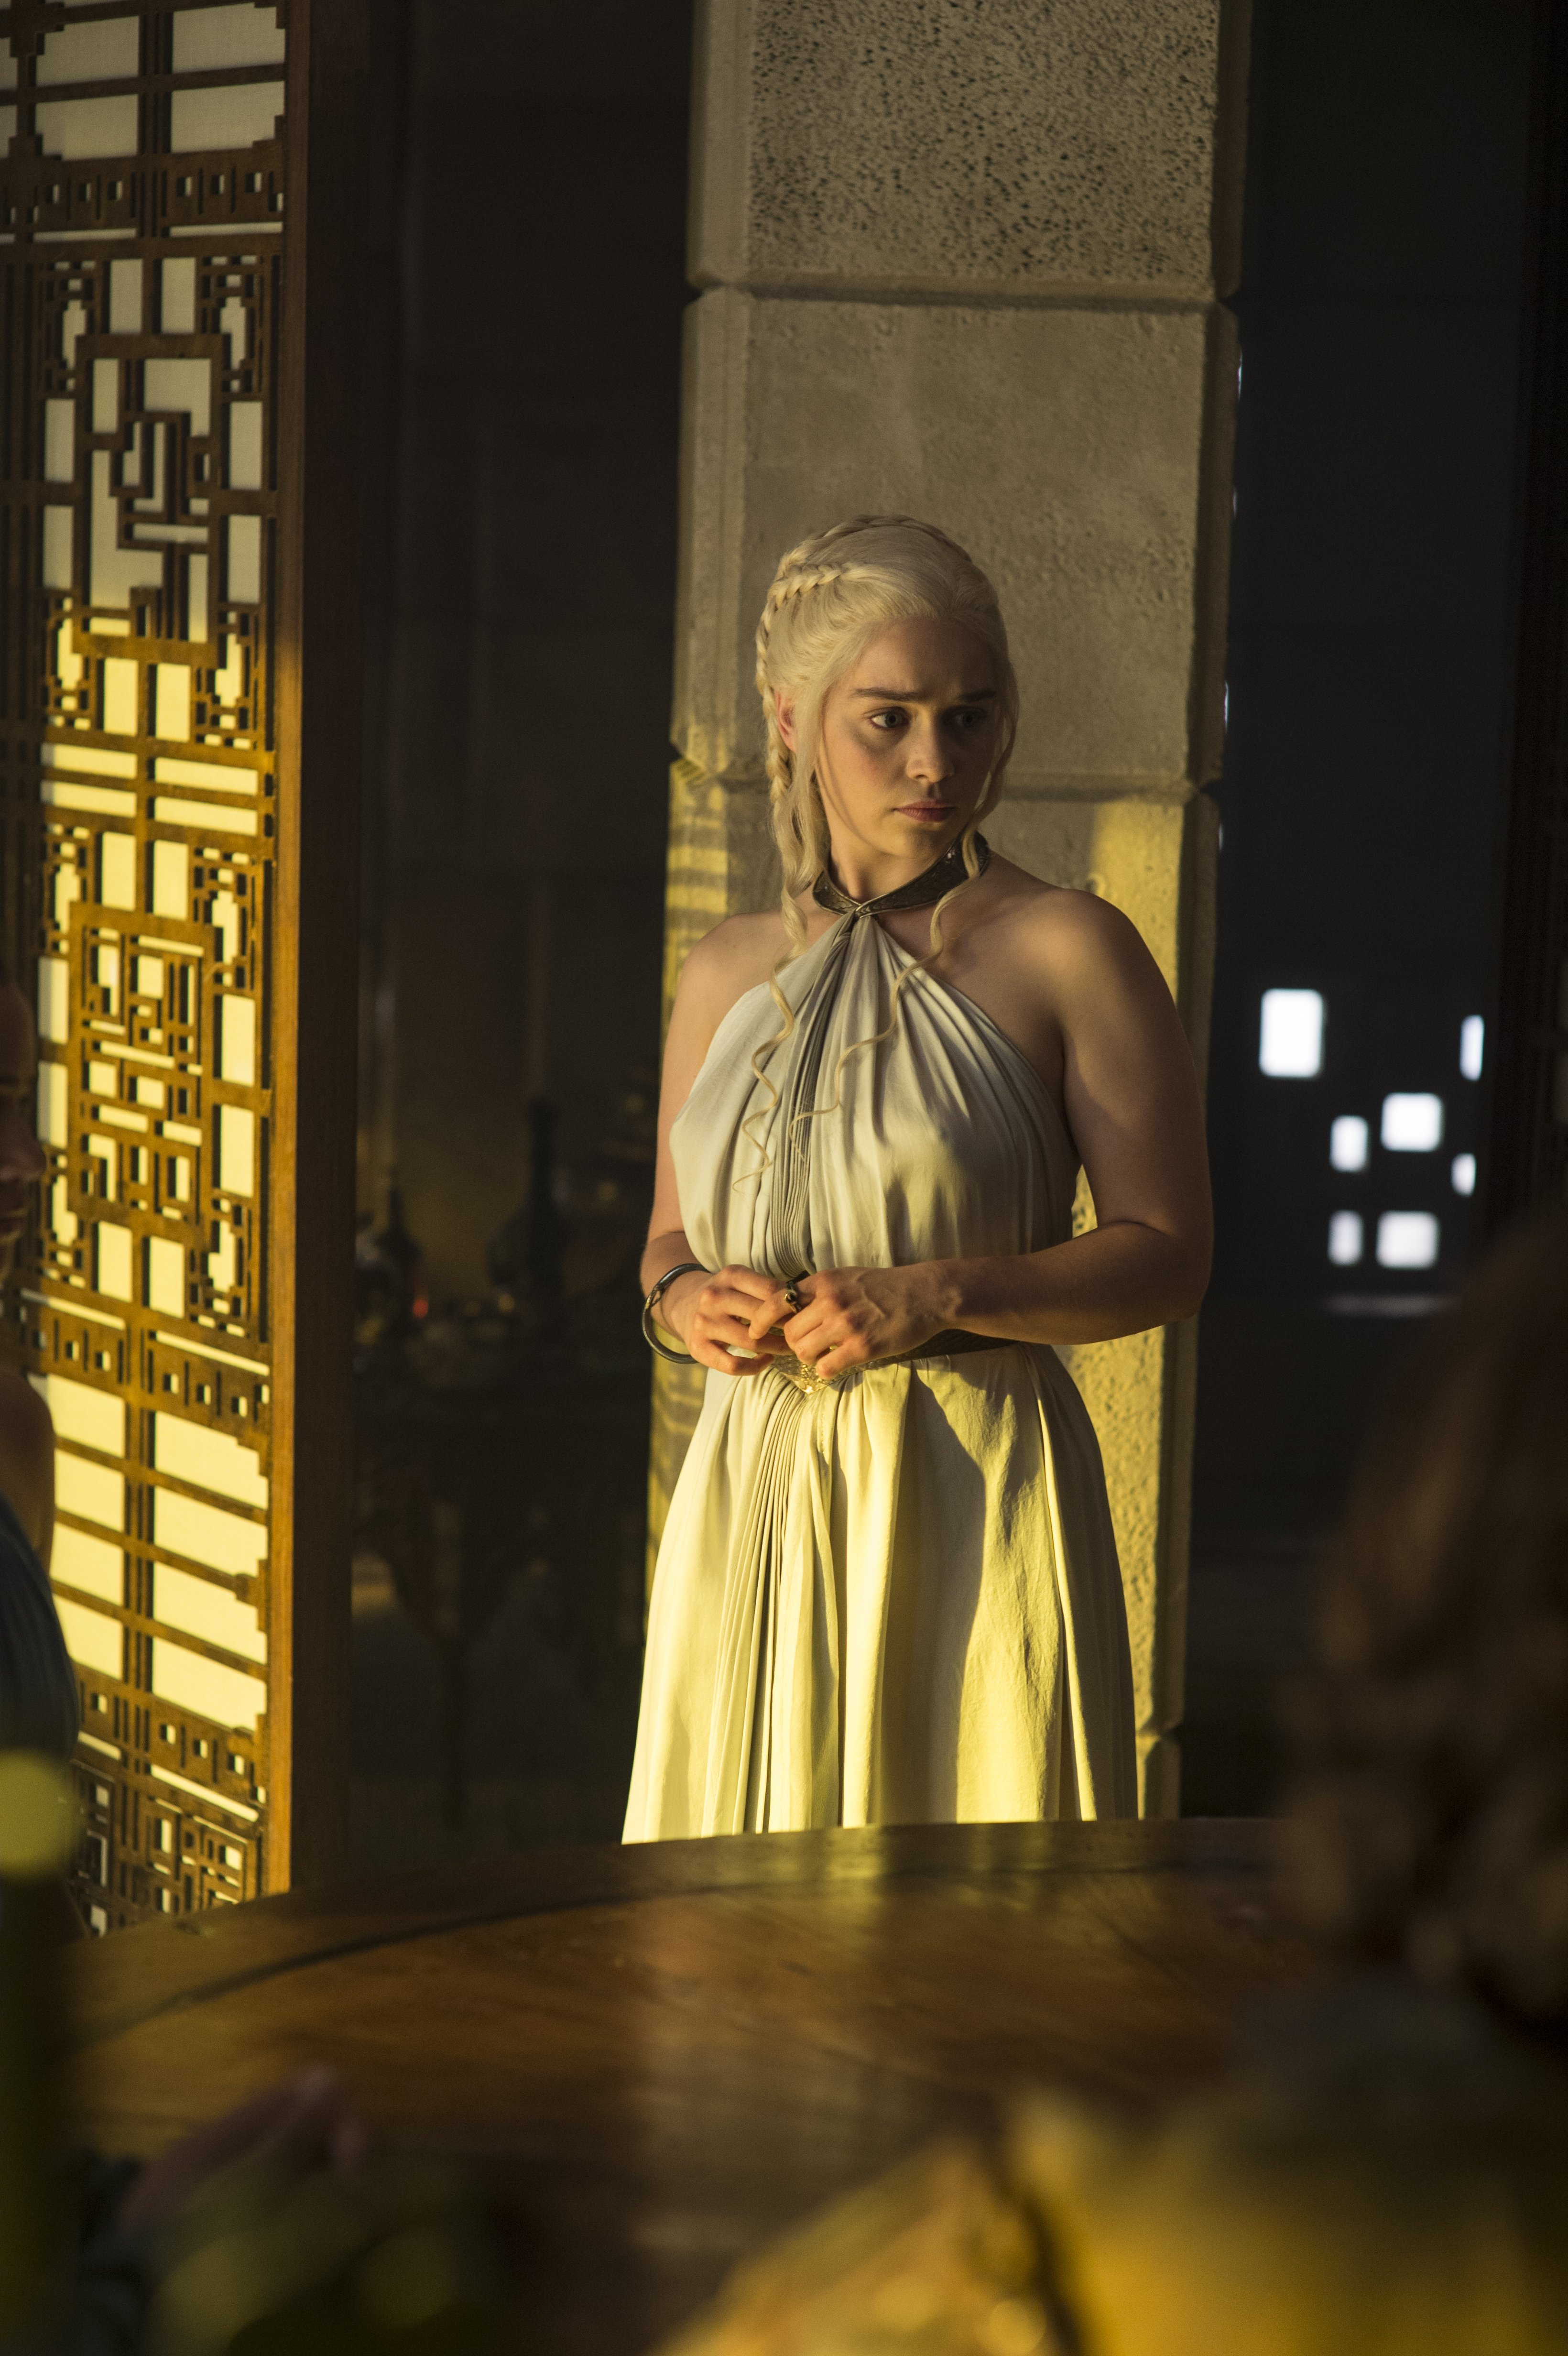 hbo game of thrones season 6 what time